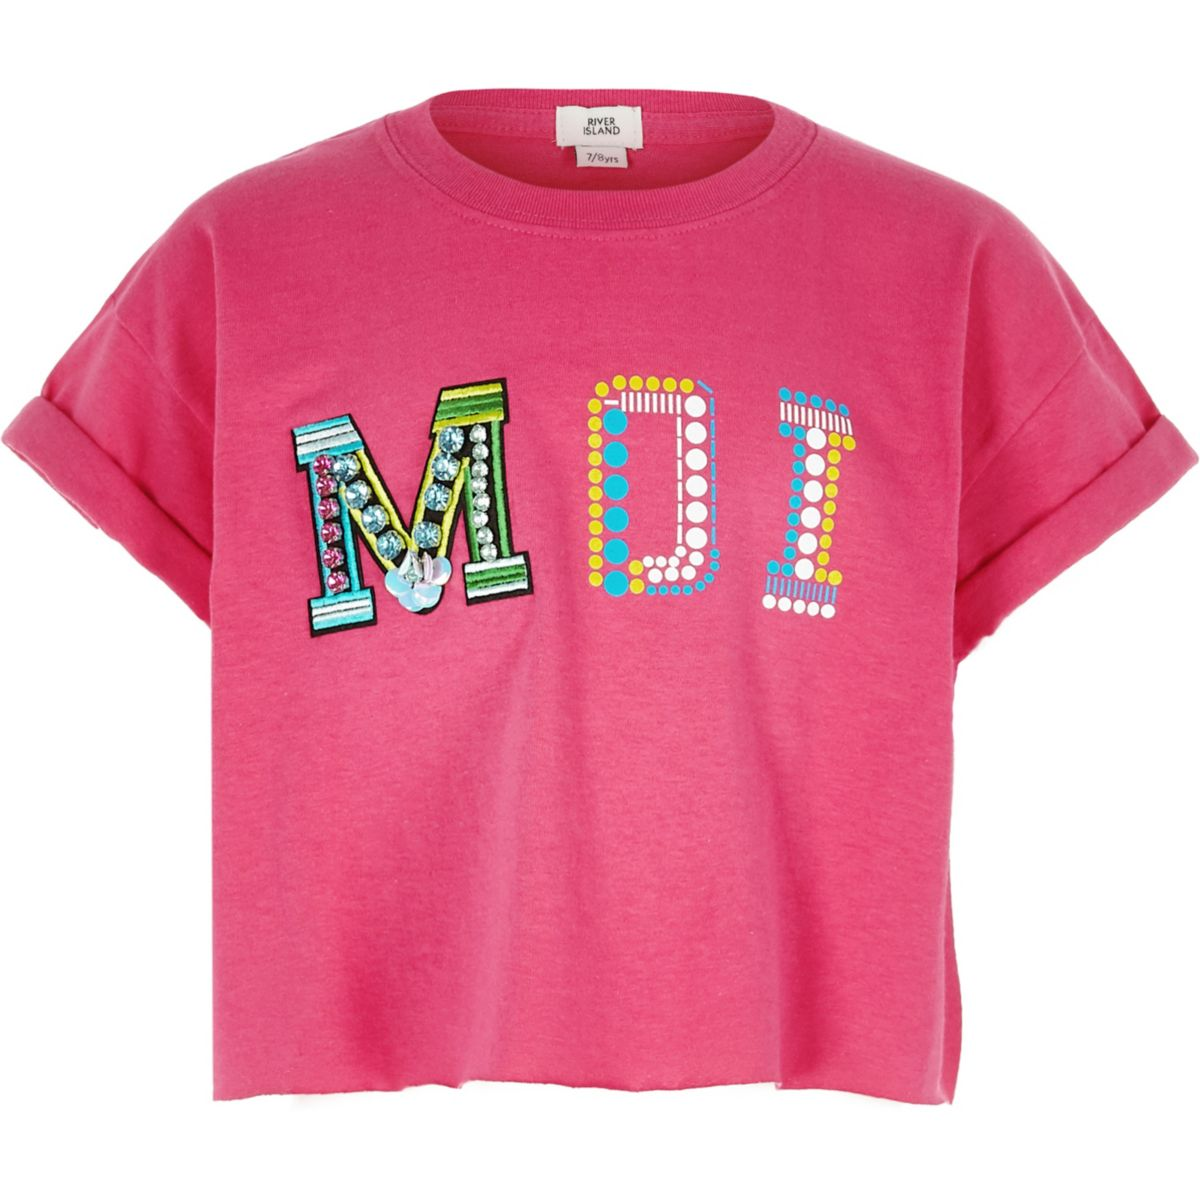 Girls bright pink 'Moi' embellished crop top